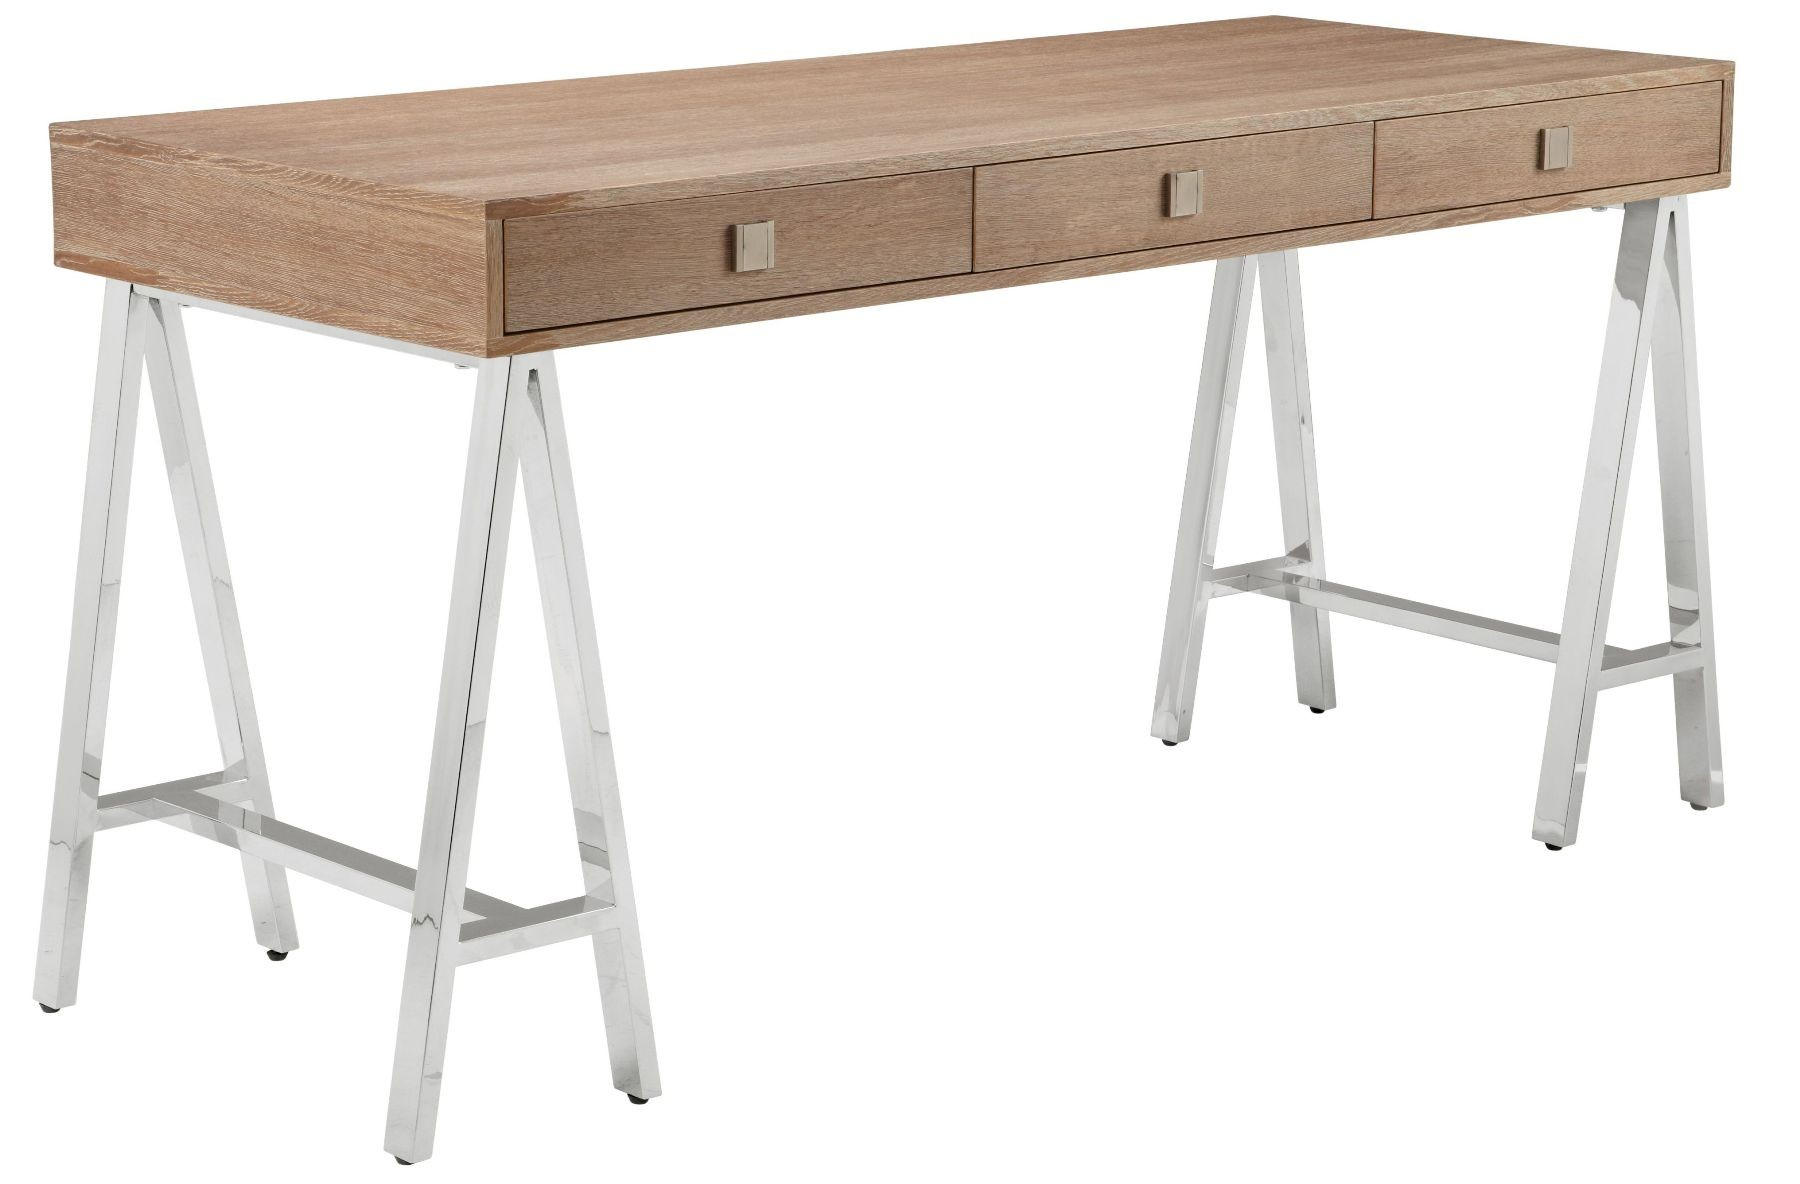 Embassy Driftwood Desk from Sunpan 53577 Coleman Furniture